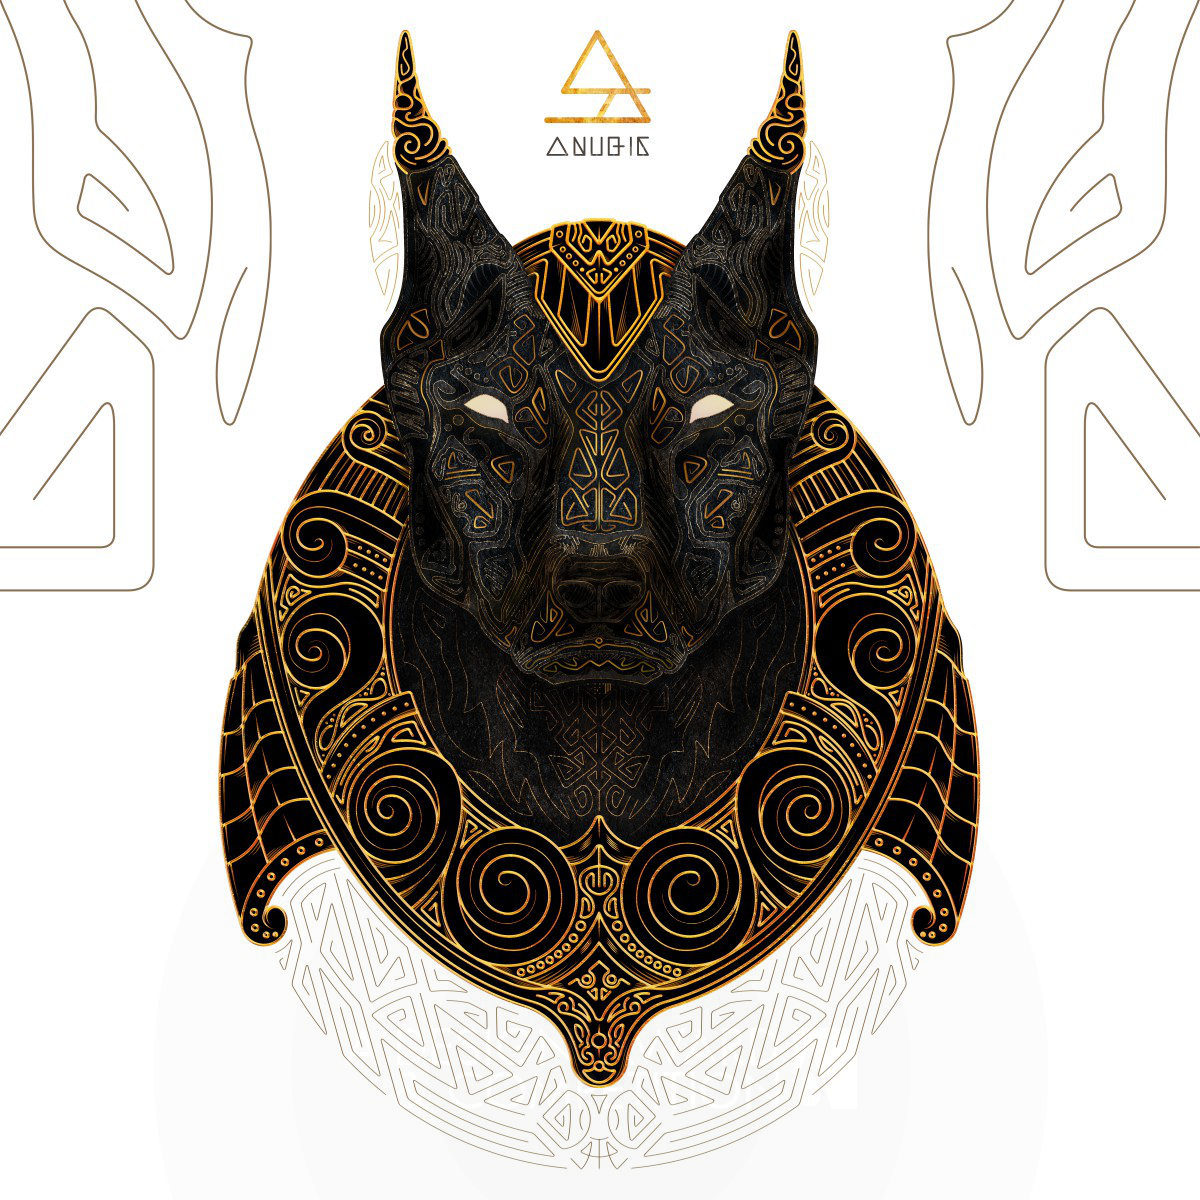 Anubis The Judge Illustration